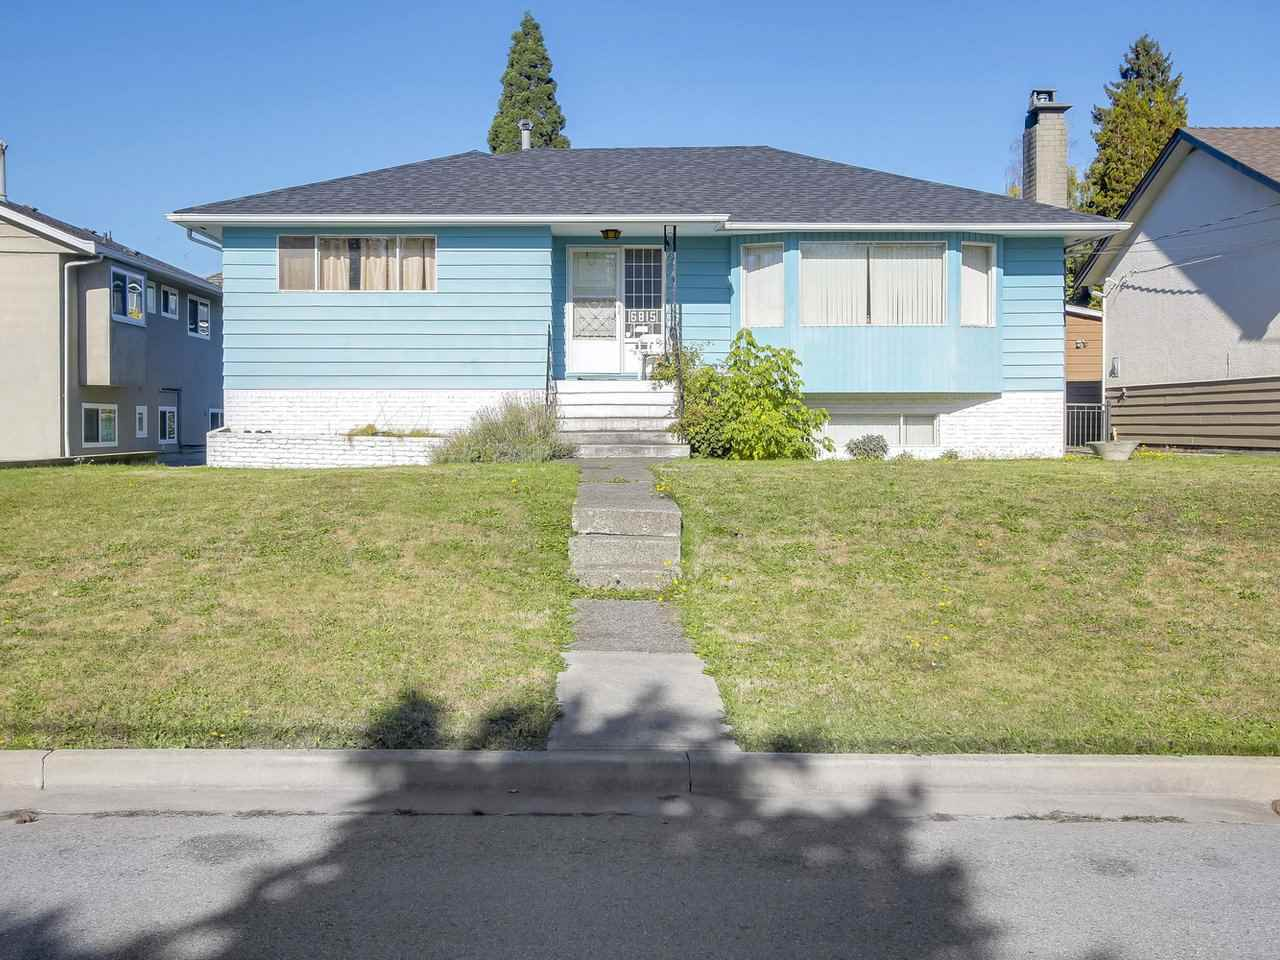 Rarely available in one of the best location of Burnaby North.  This solid well cared for home sits on a large 57X127 ft lot on a quiet  Cul-de-sac, perfect for Families.  The 2 level home offers Approx 2500 sqft of living space, main floor features  open living/dining room are space, with large windows and a large sun deck  perfect for entertaining.  The basement has its own bathroom, 2 bedroom and a rec room.  Walking distance to Sperling Elementary School, and Burnaby north Secondary catchment.  This is the perfect location for renovating, or building your dream home.  All this and a new roof. FIRST SHOWING Wednesday Nov 1st at 5pm.